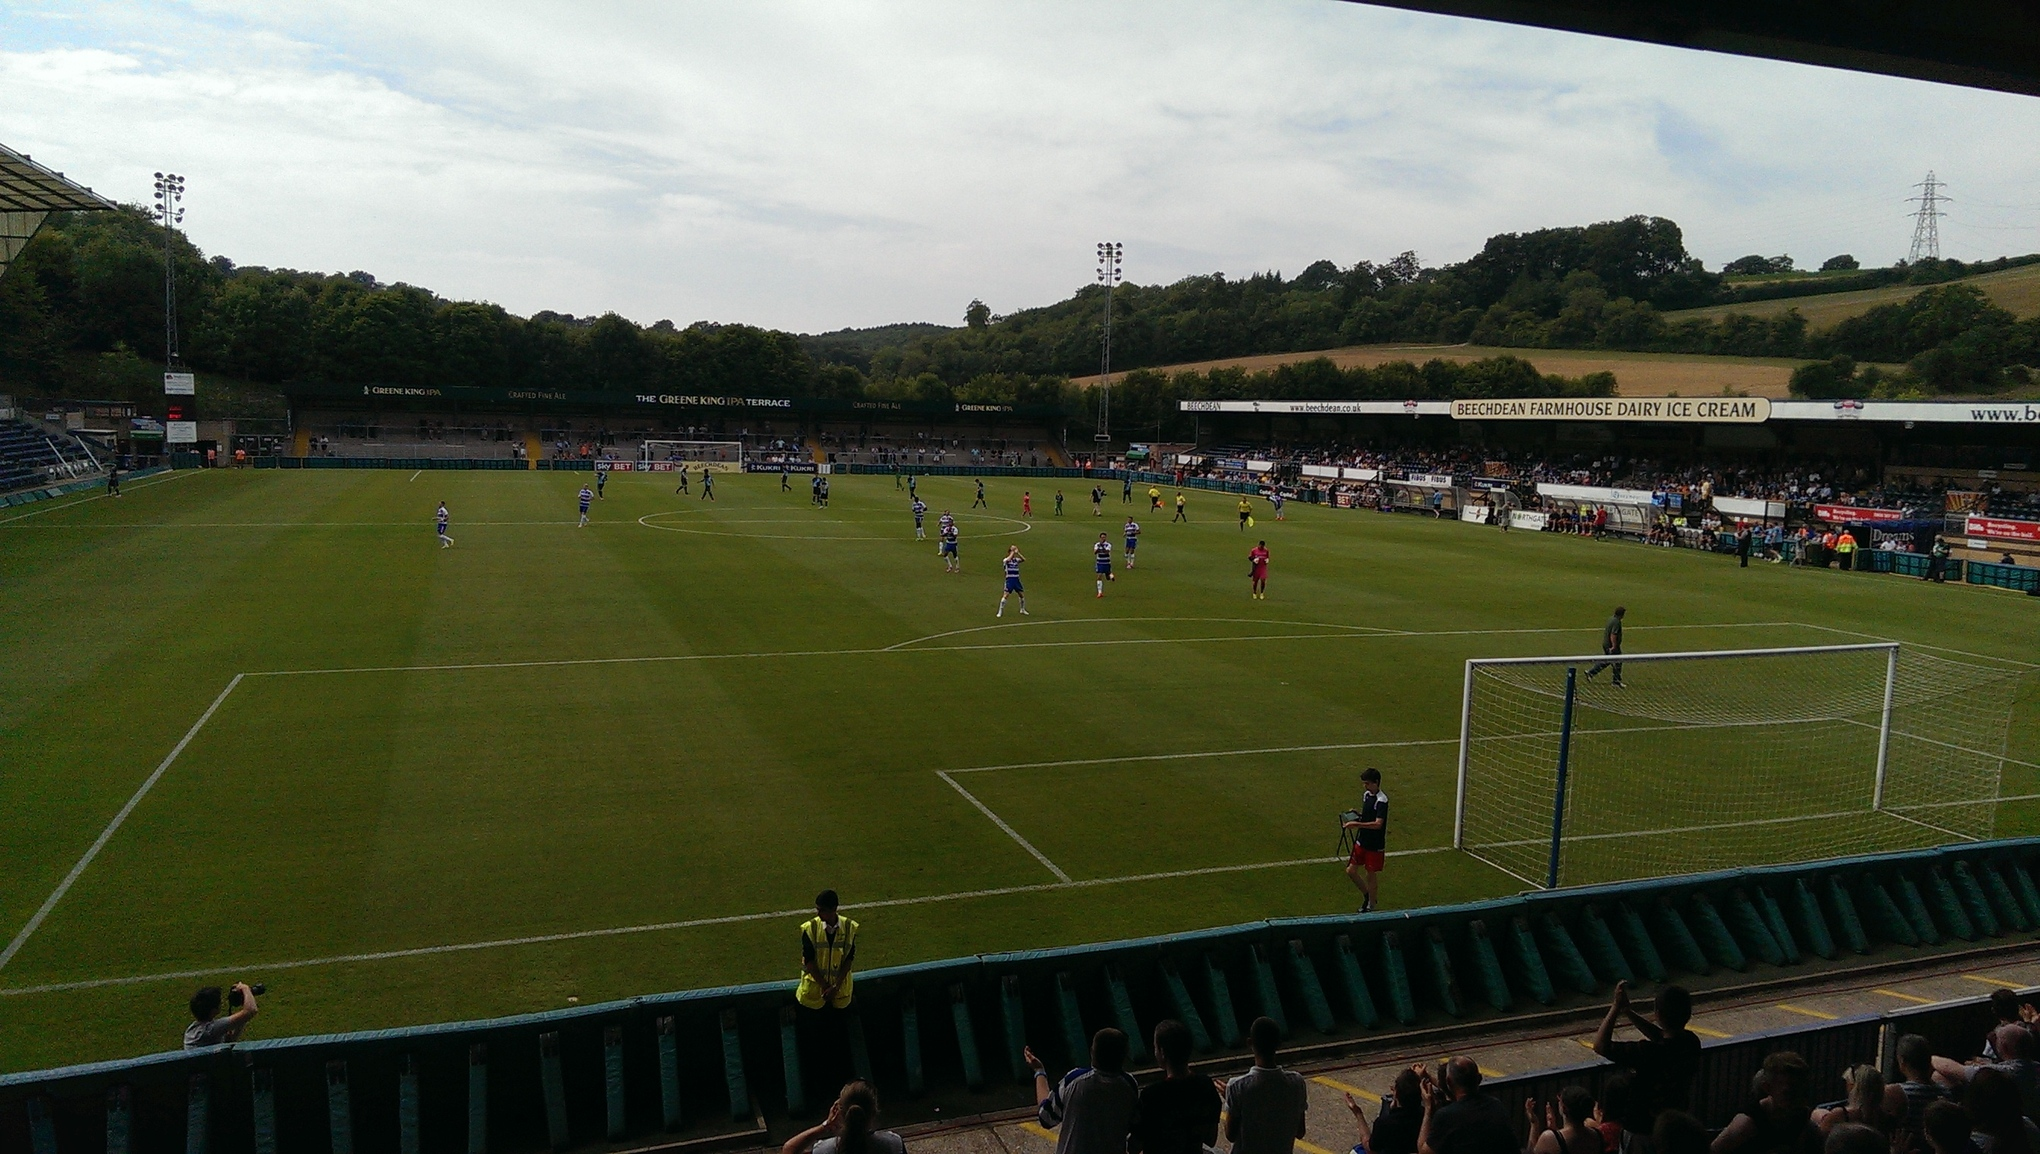 The players take to the pitch at Adams Park